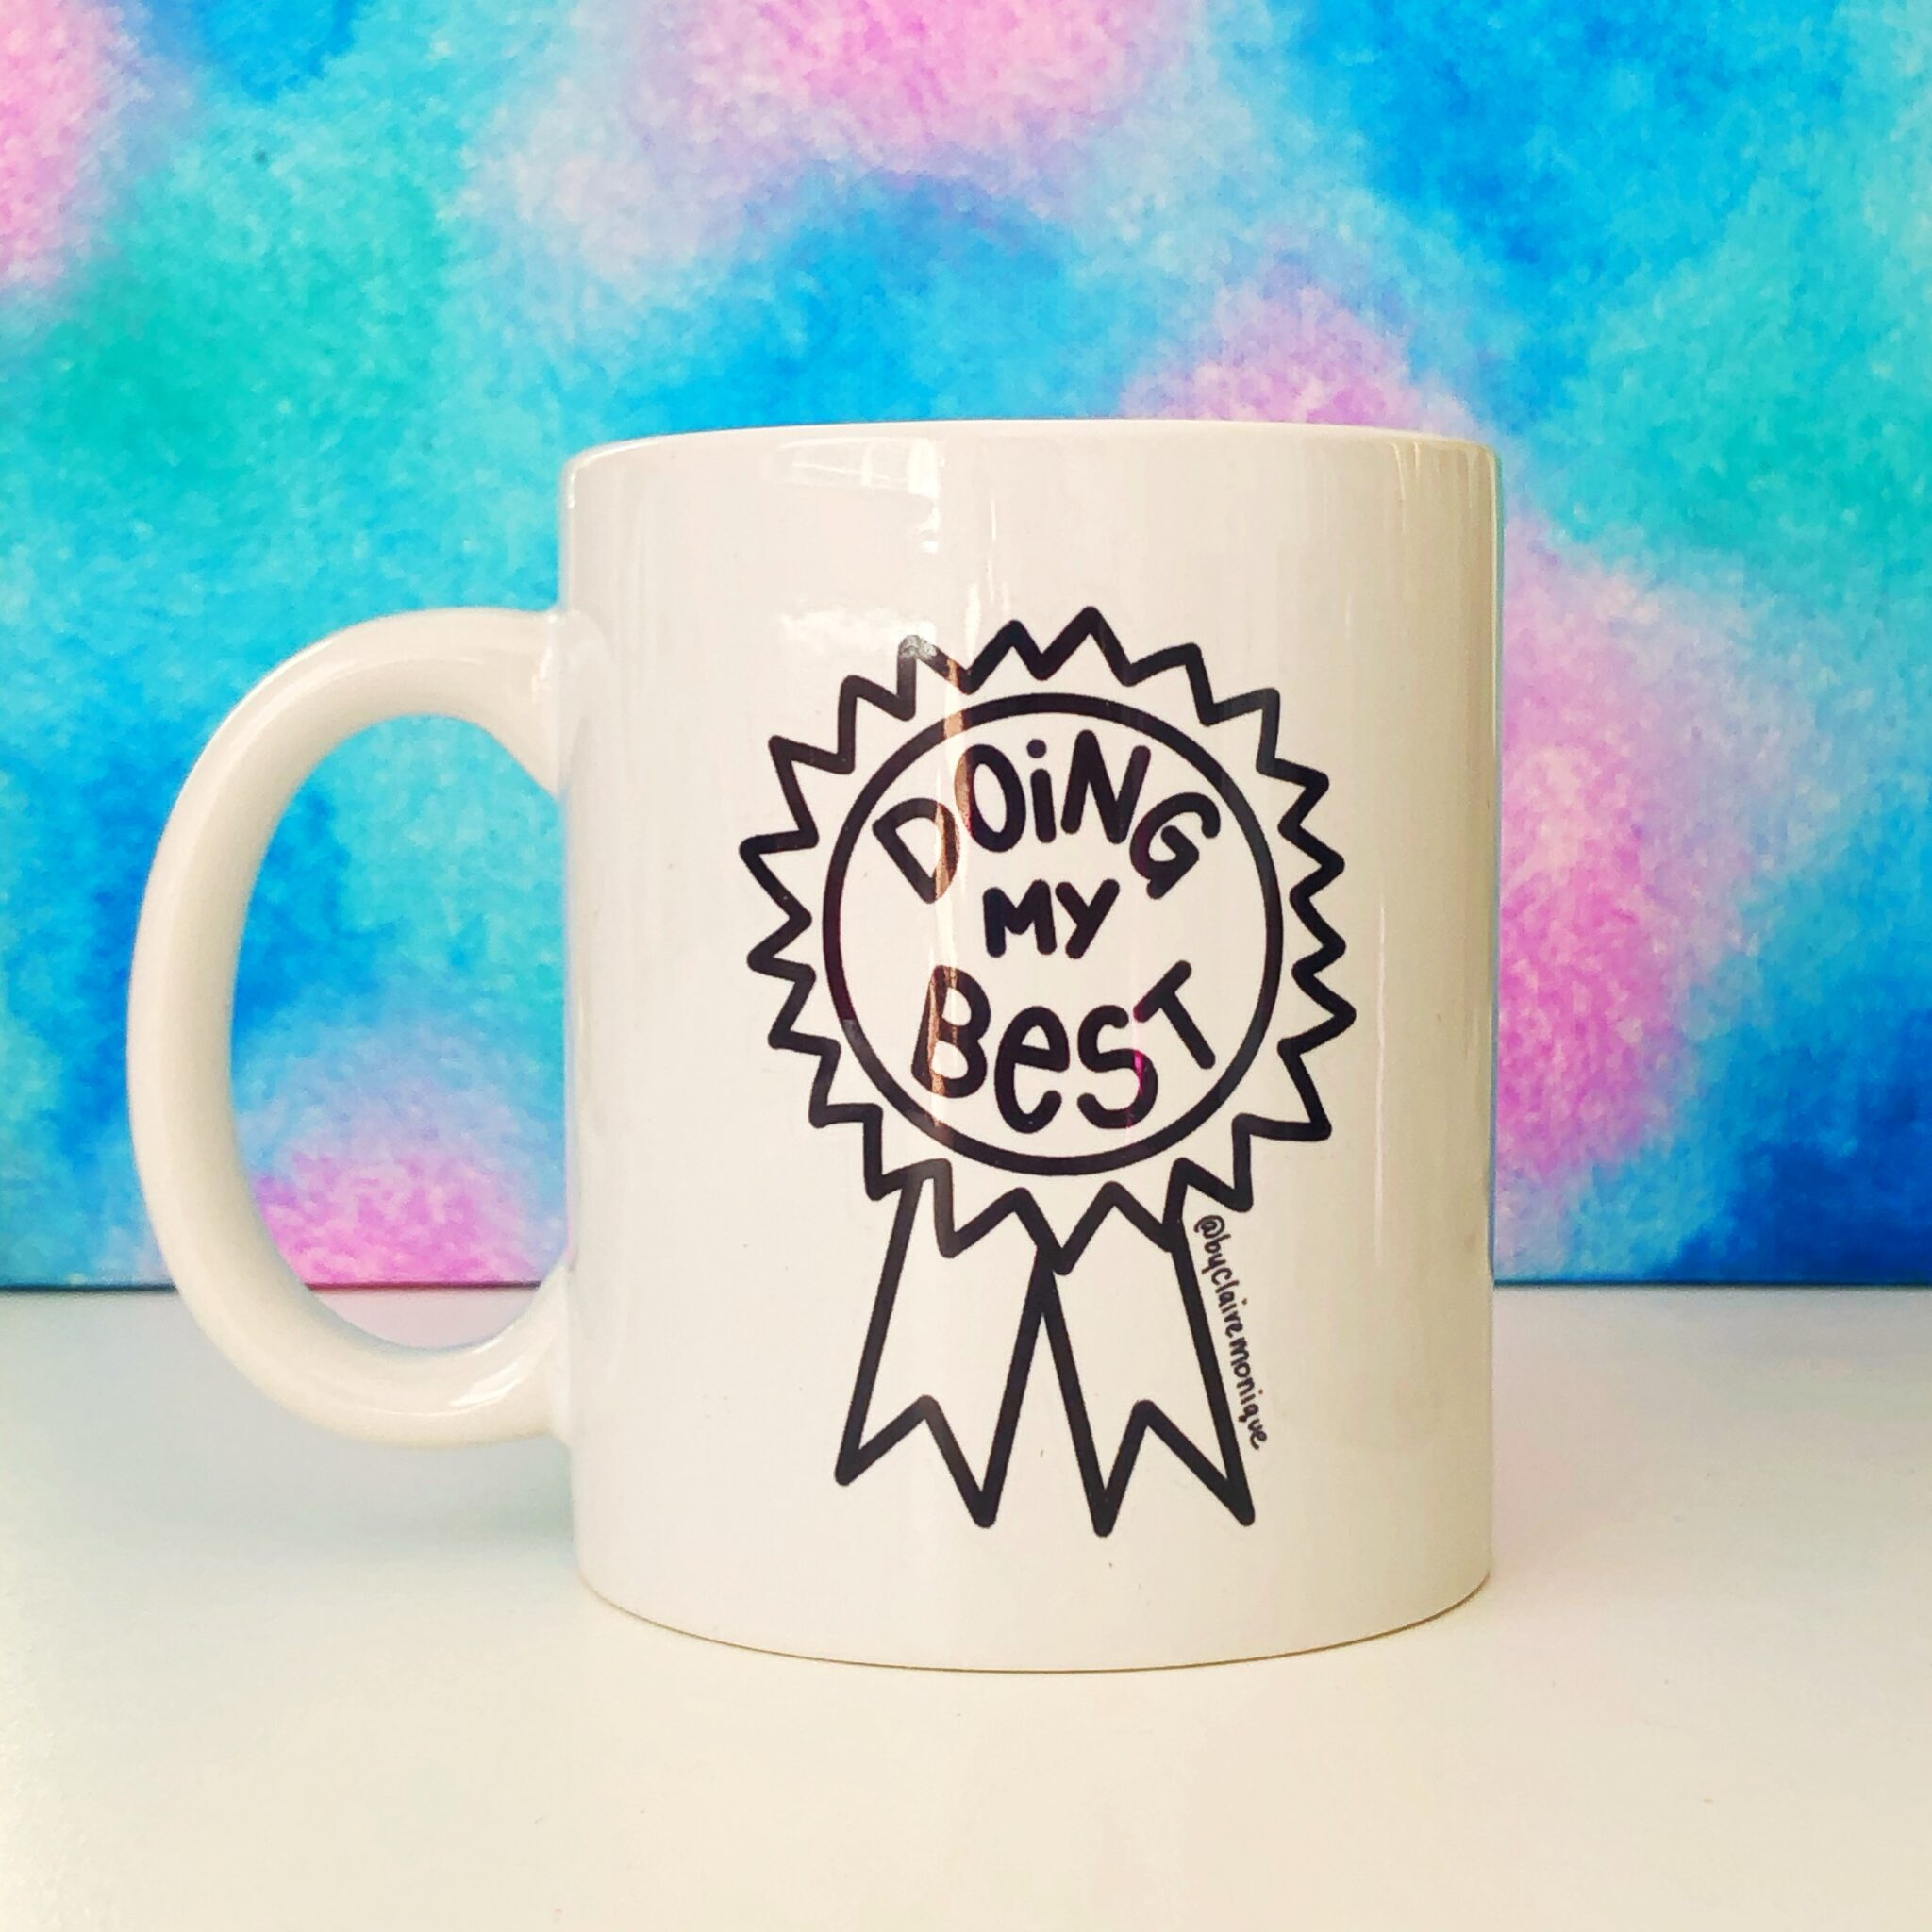 Doing My Best Award Mug By Claire Monique